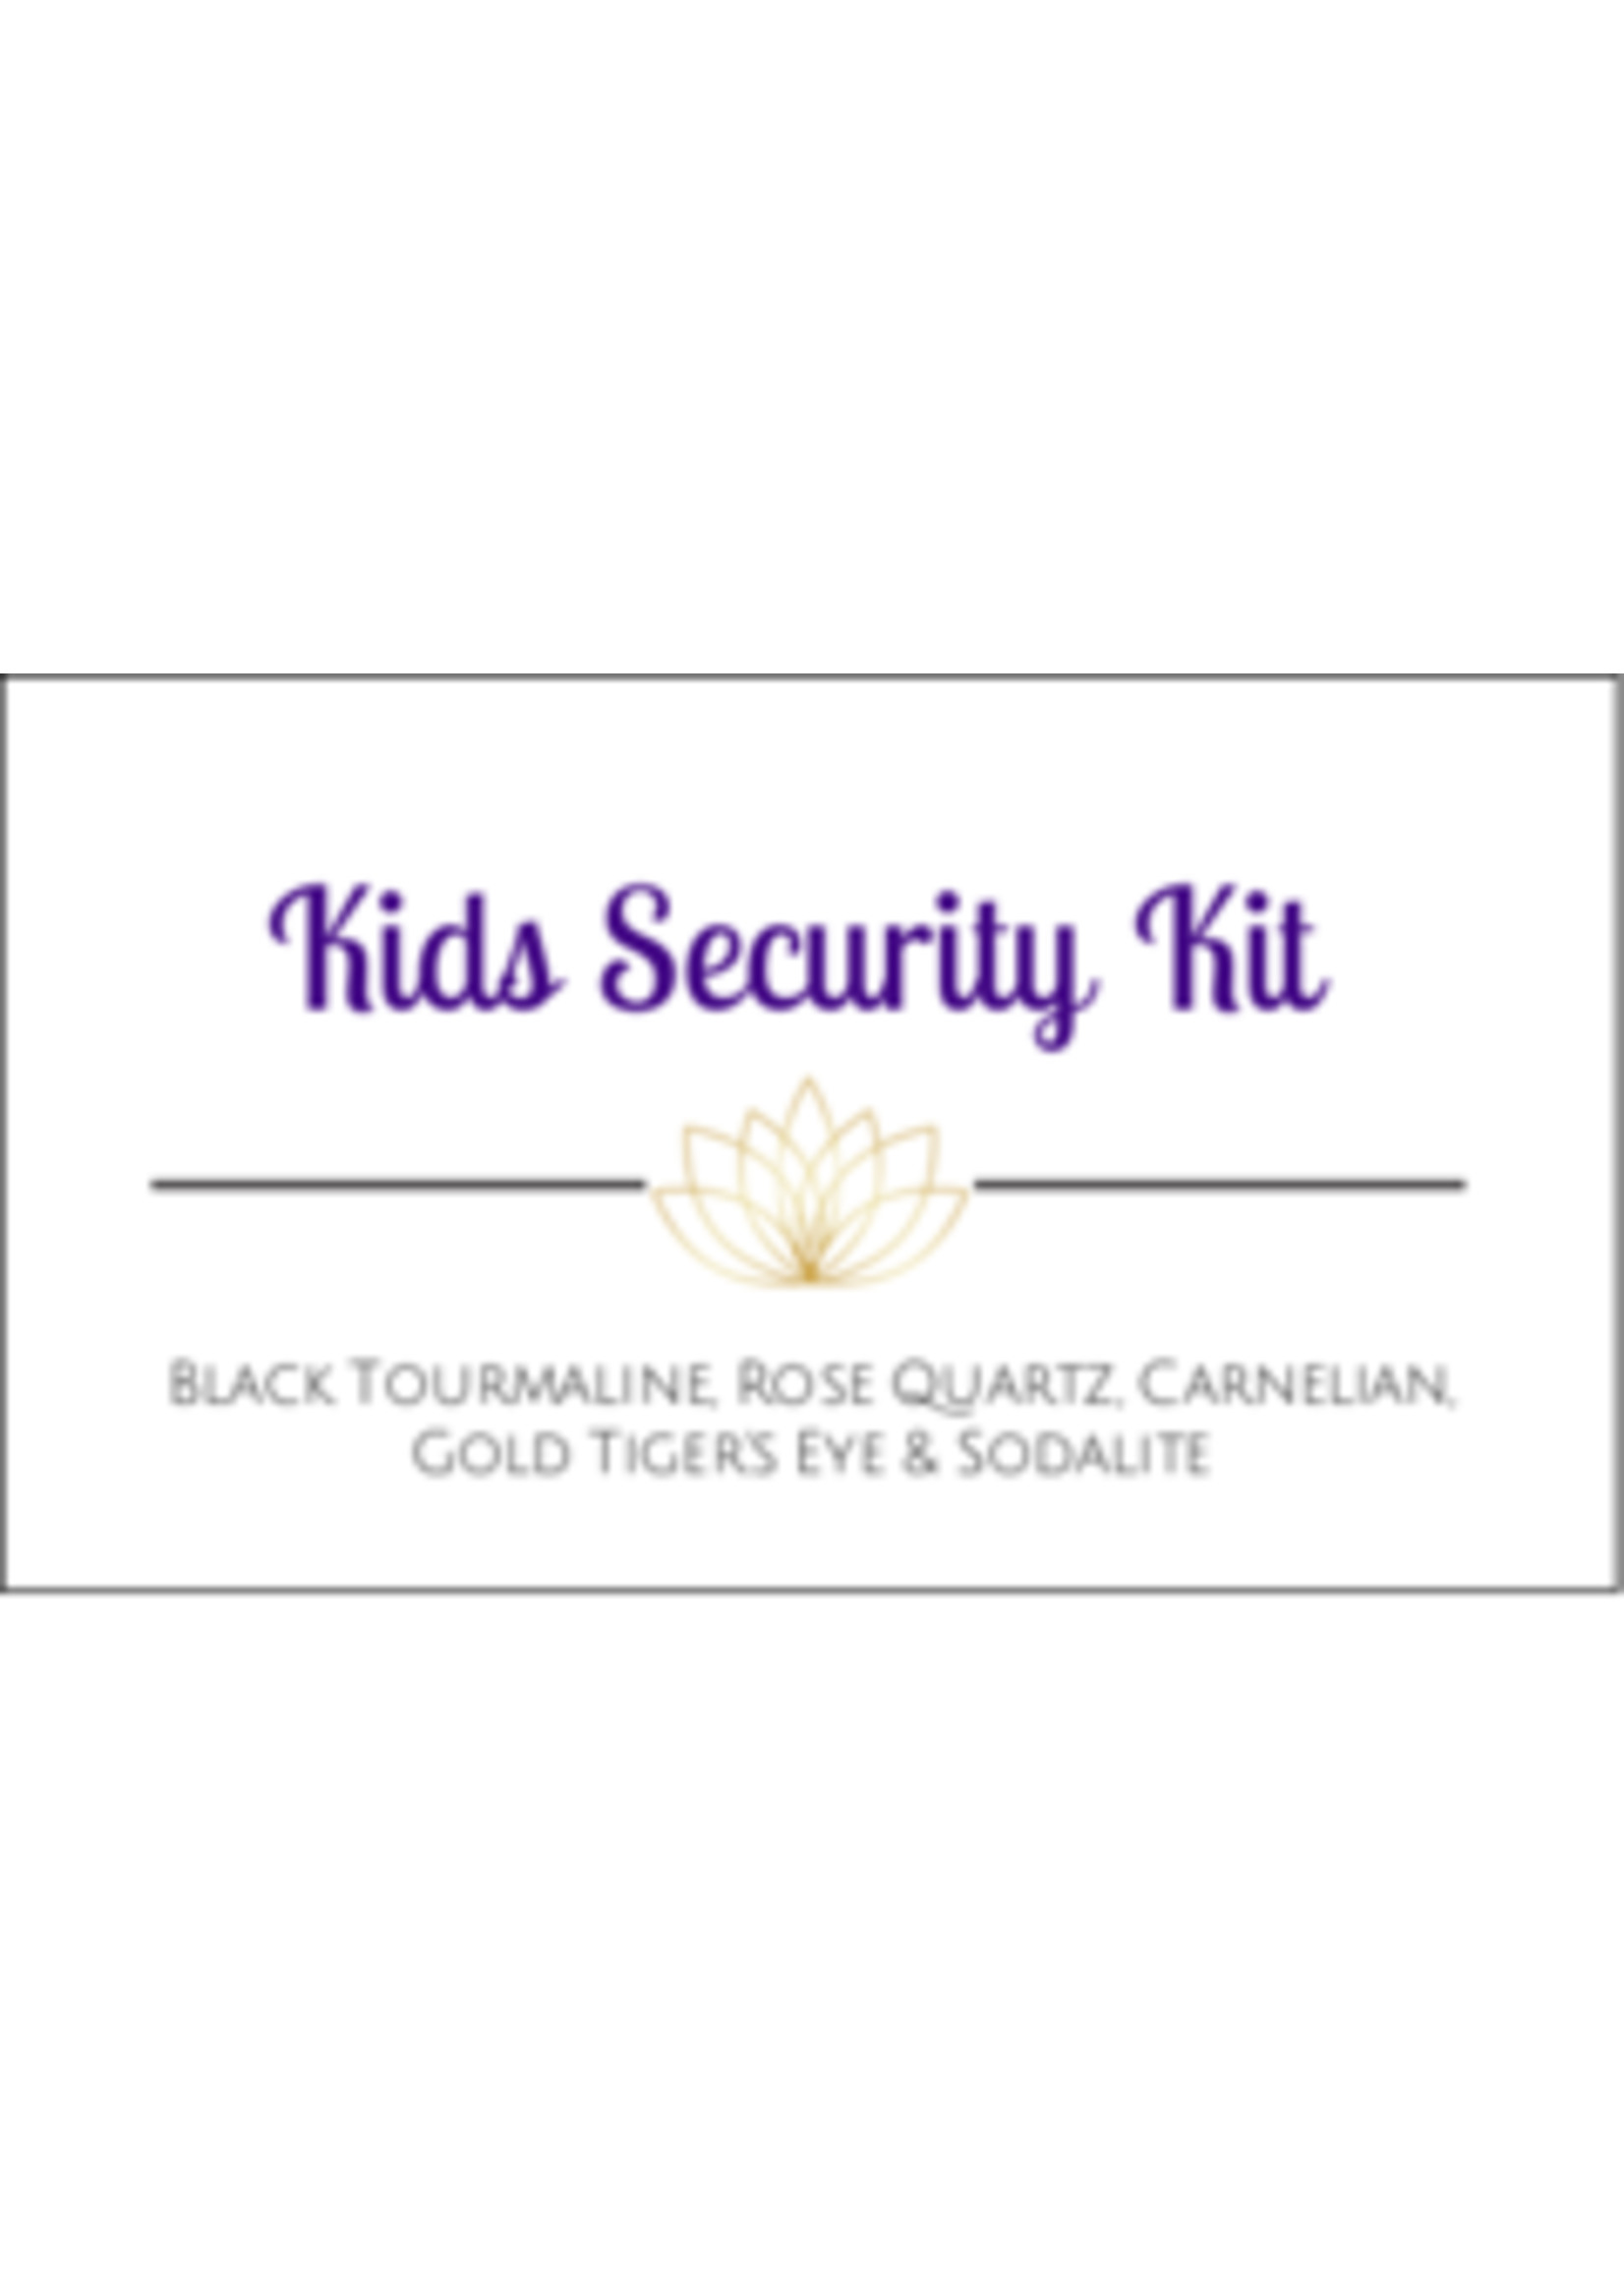 Kids Security Crystal Kit Cards - Box of 100